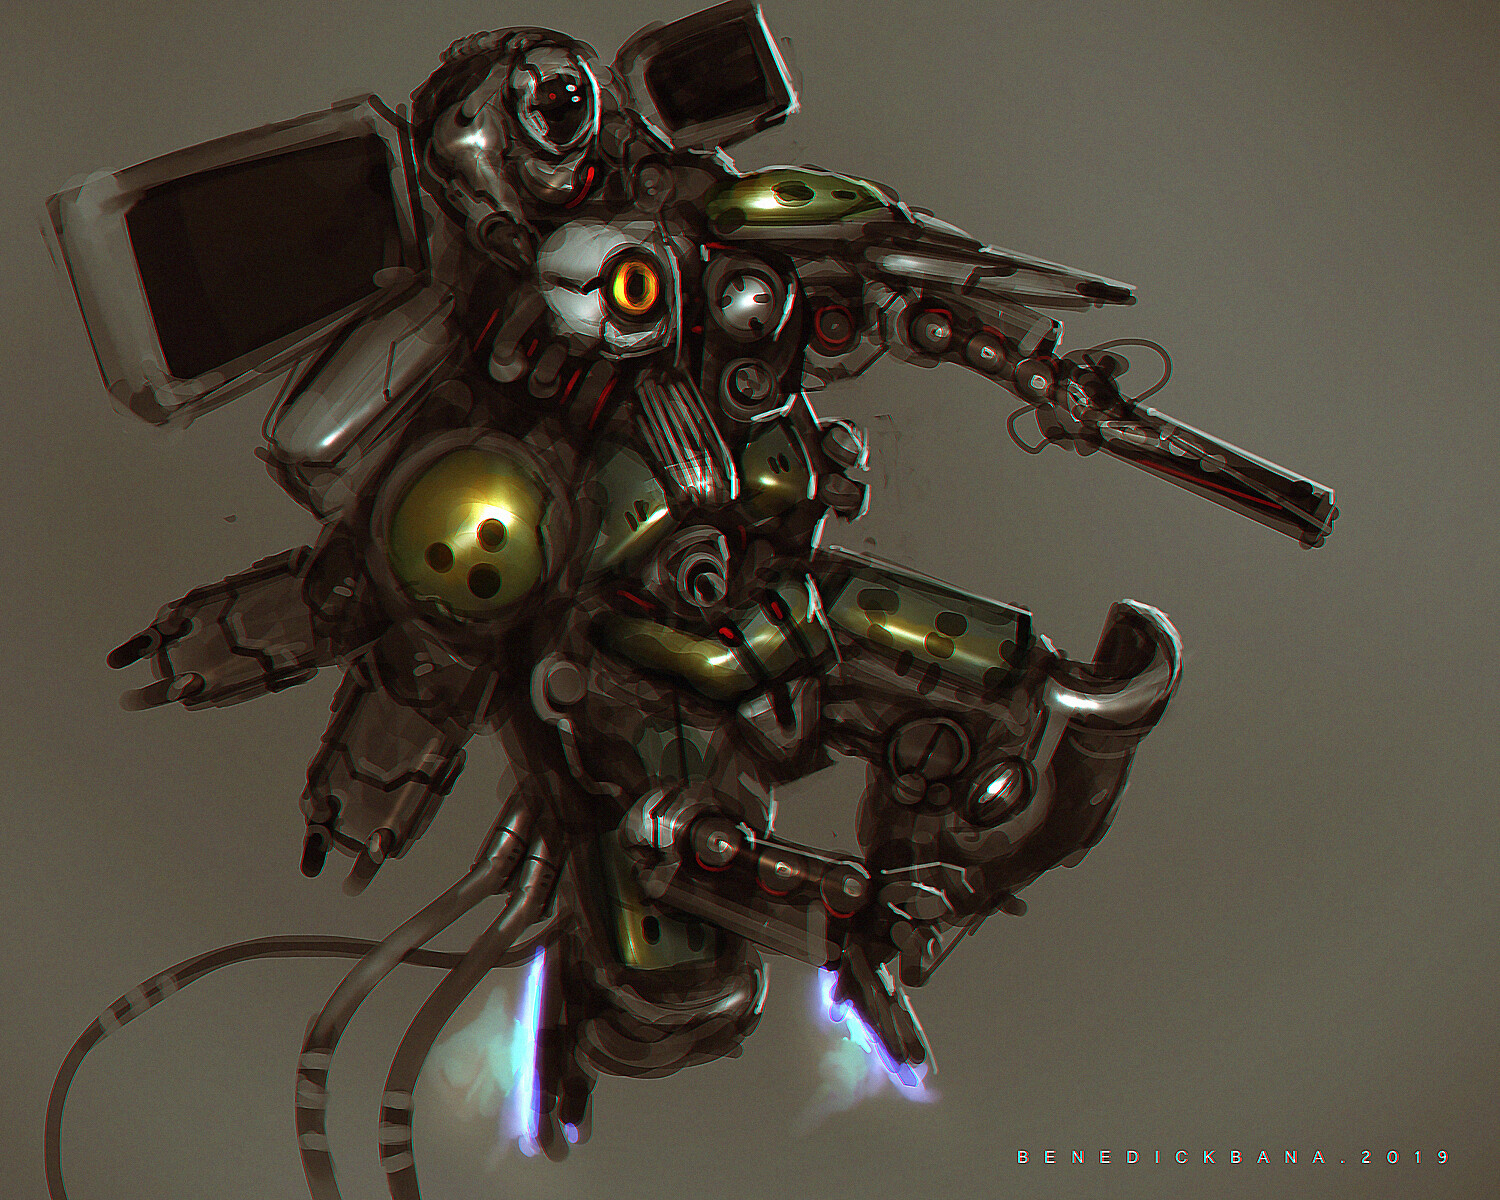 Benedick bana spacemech unit2 coloring lores